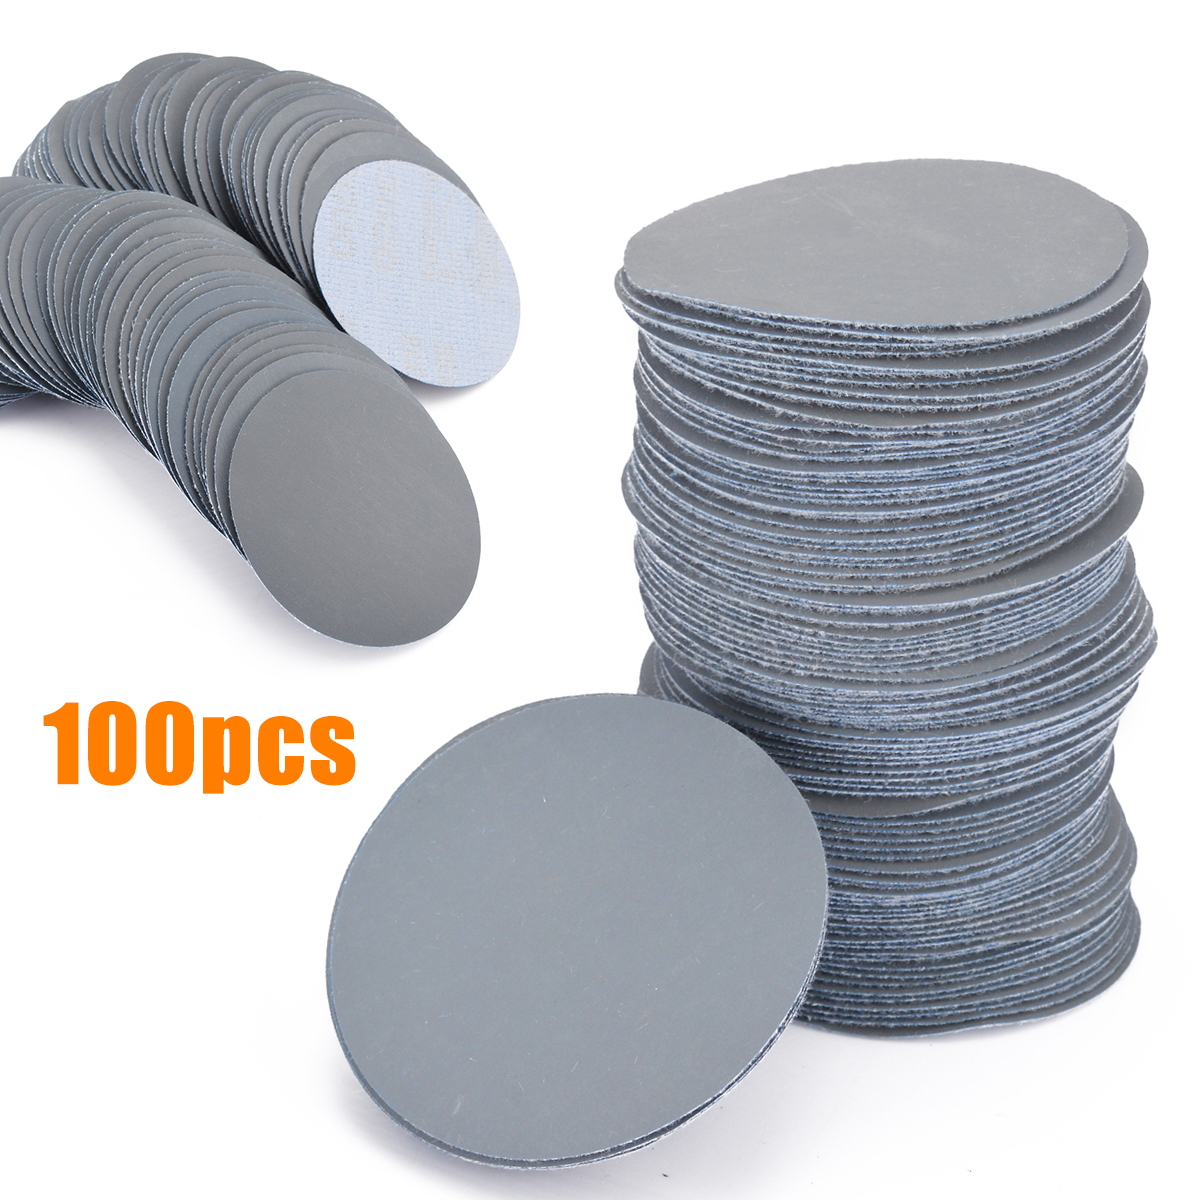 100pcs Sander Discs 3inch/75mm 3000 Grit Sander Discs Sanding Cleaning Polishing Pads Sandpaper Set